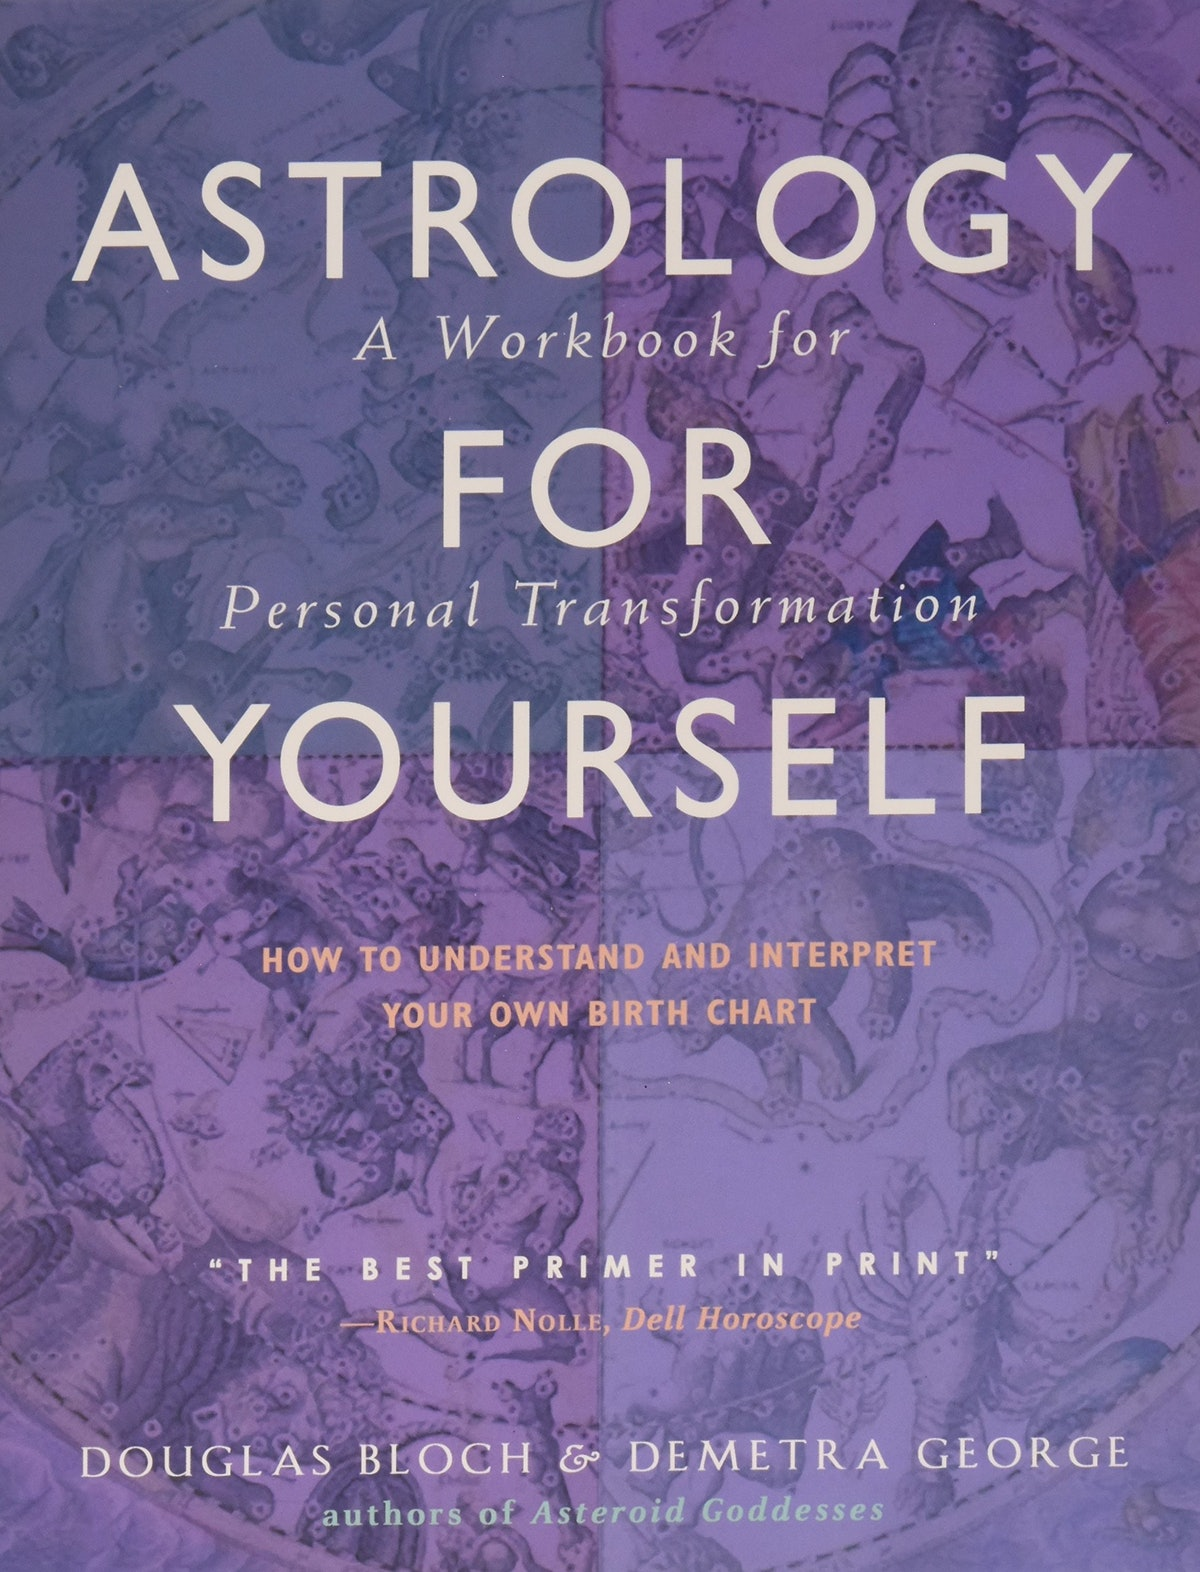 Astrology for Yourself: How to Understand and Interpret Your Own Birth Chart by Douglas Bloch & Deme...